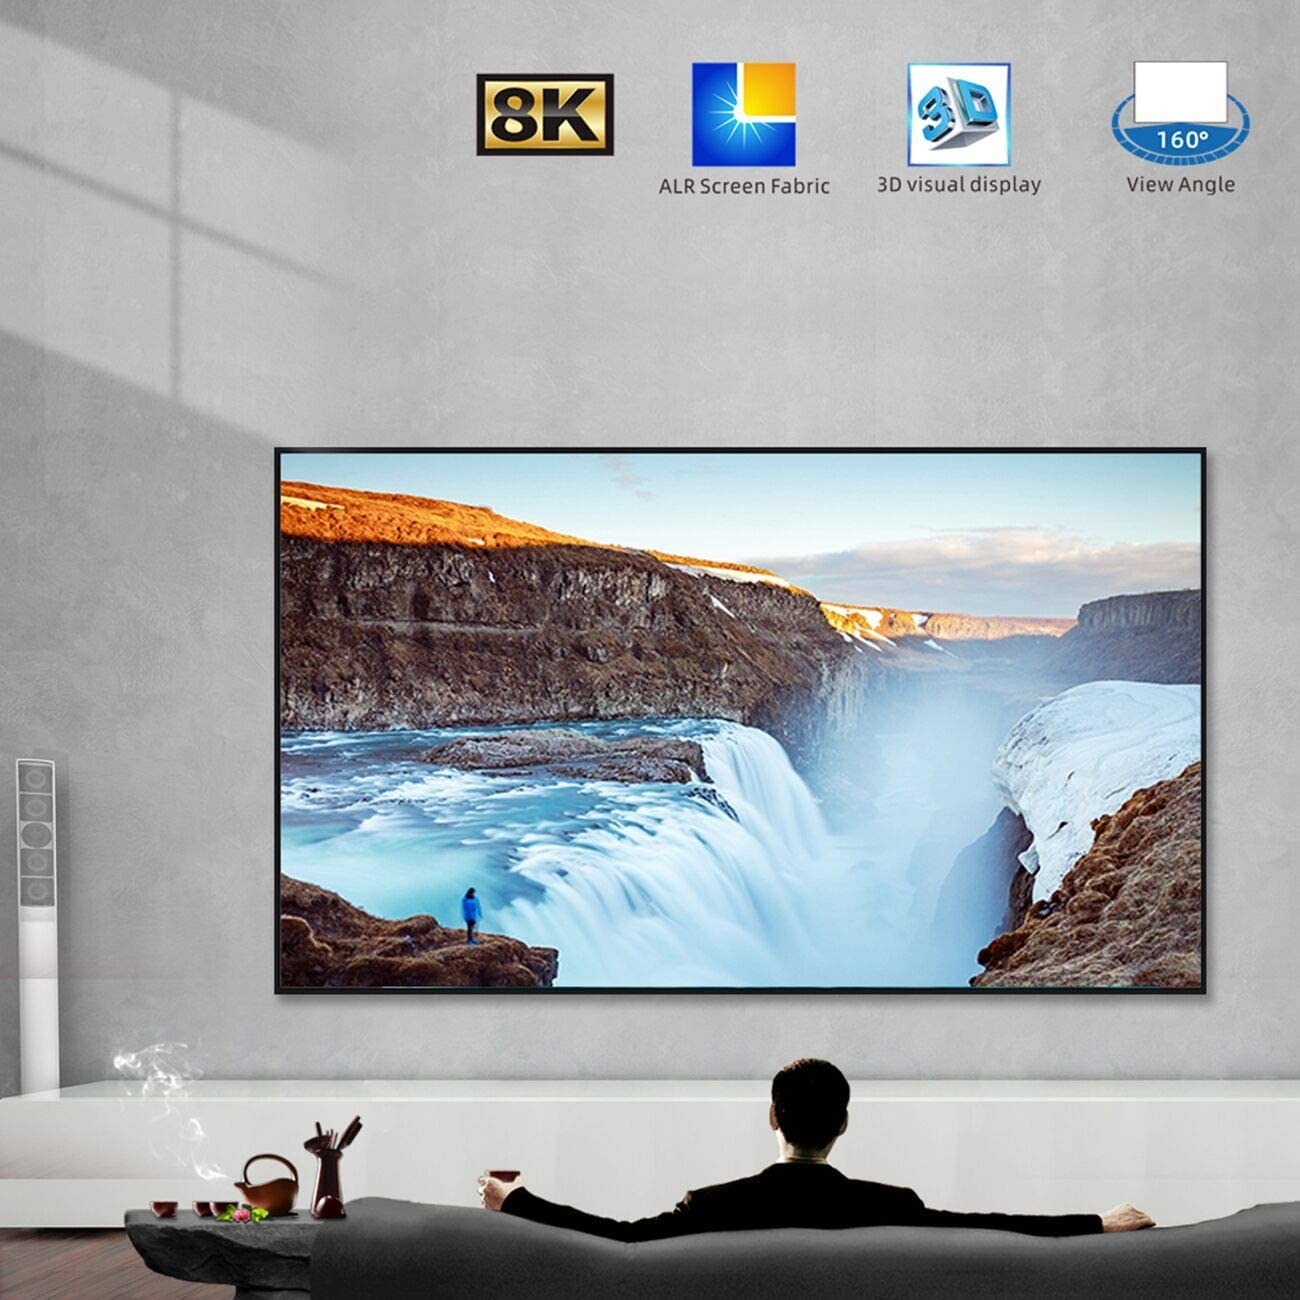 """SCREENPRO Projector Screen 120 inch Edge Free Fixed Frame Home Theater Screen 120"""" Diagonal 16:9 8K Ultra HD 3D Ready Light Rejecting Projector Screen (16:9, 120"""", Matte Silver,7mm Frame)"""